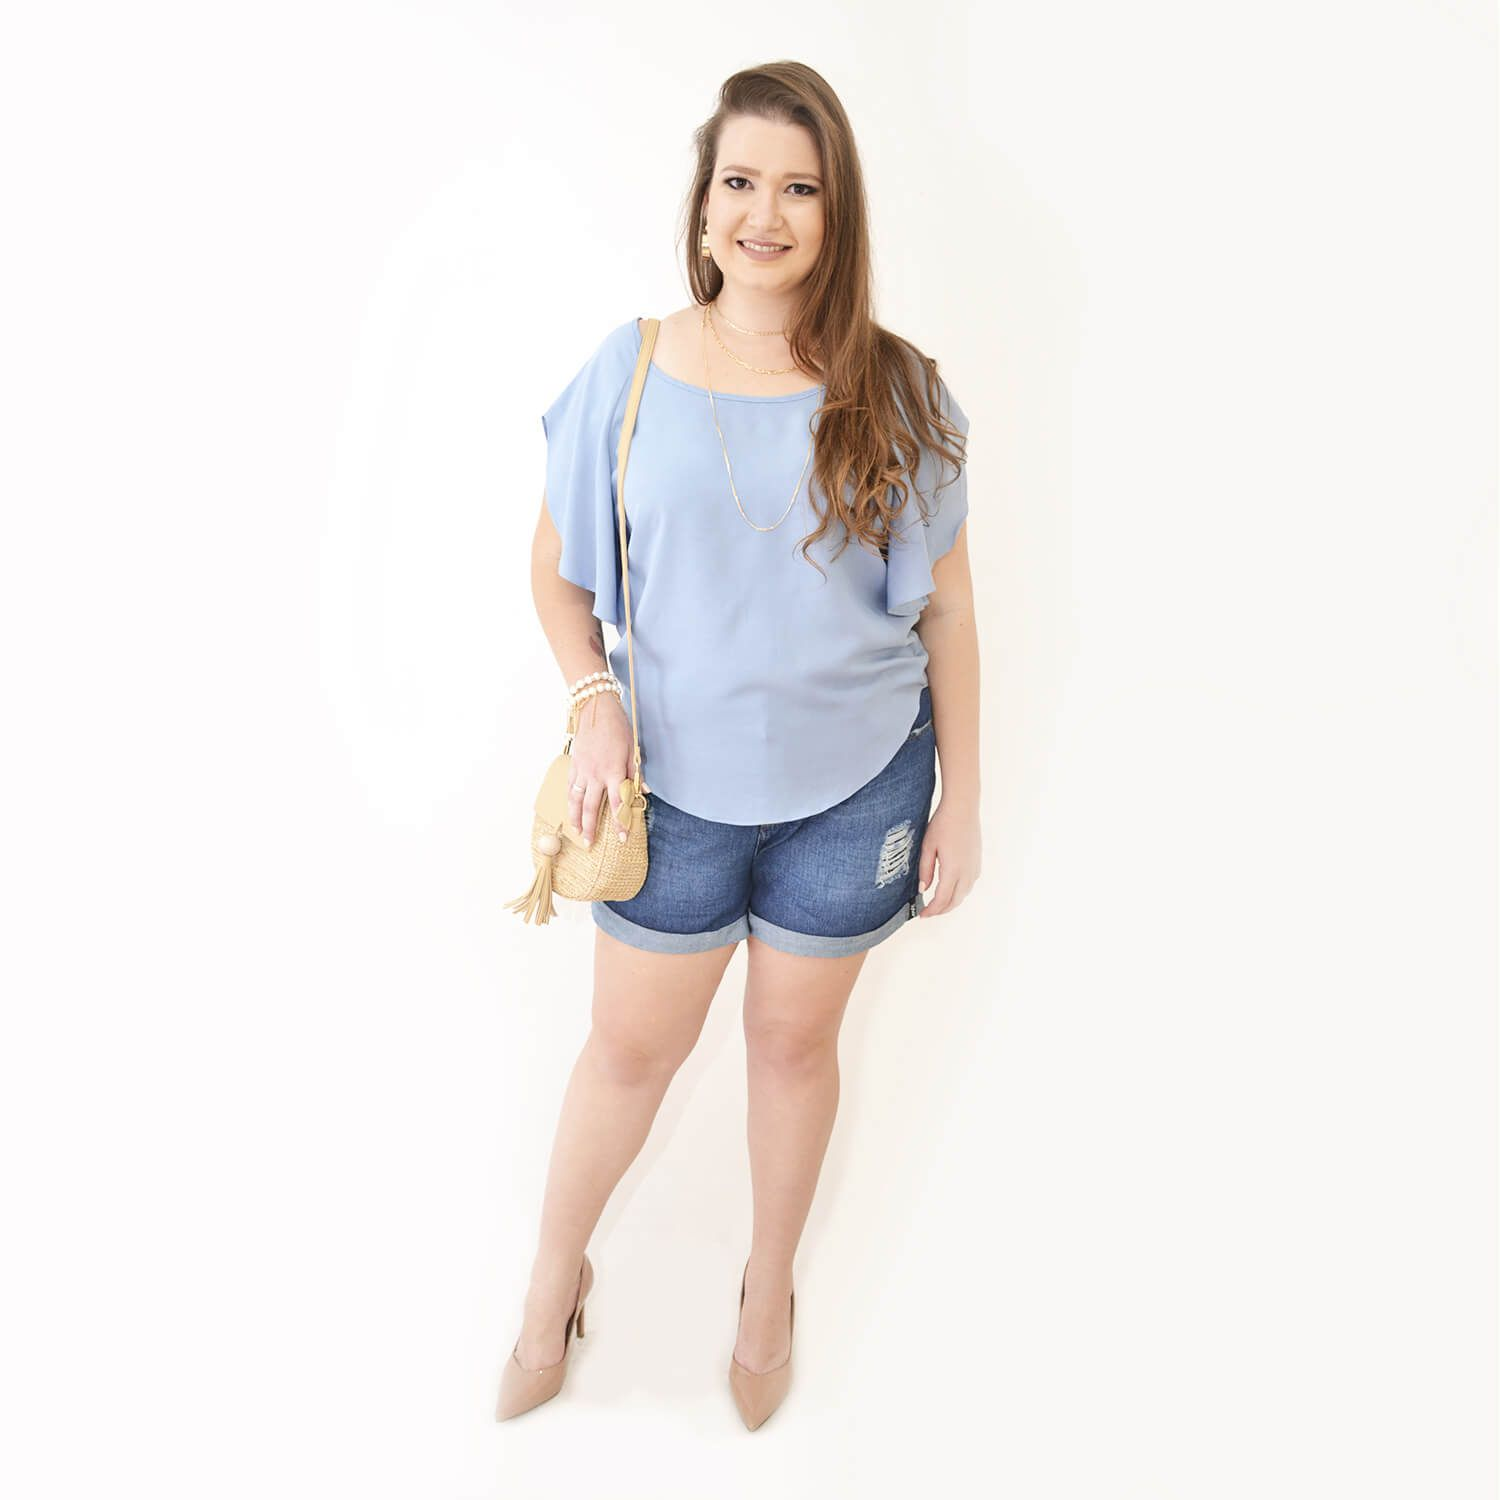 Blusa Feminina Estampada Plus Size - Annual Plus